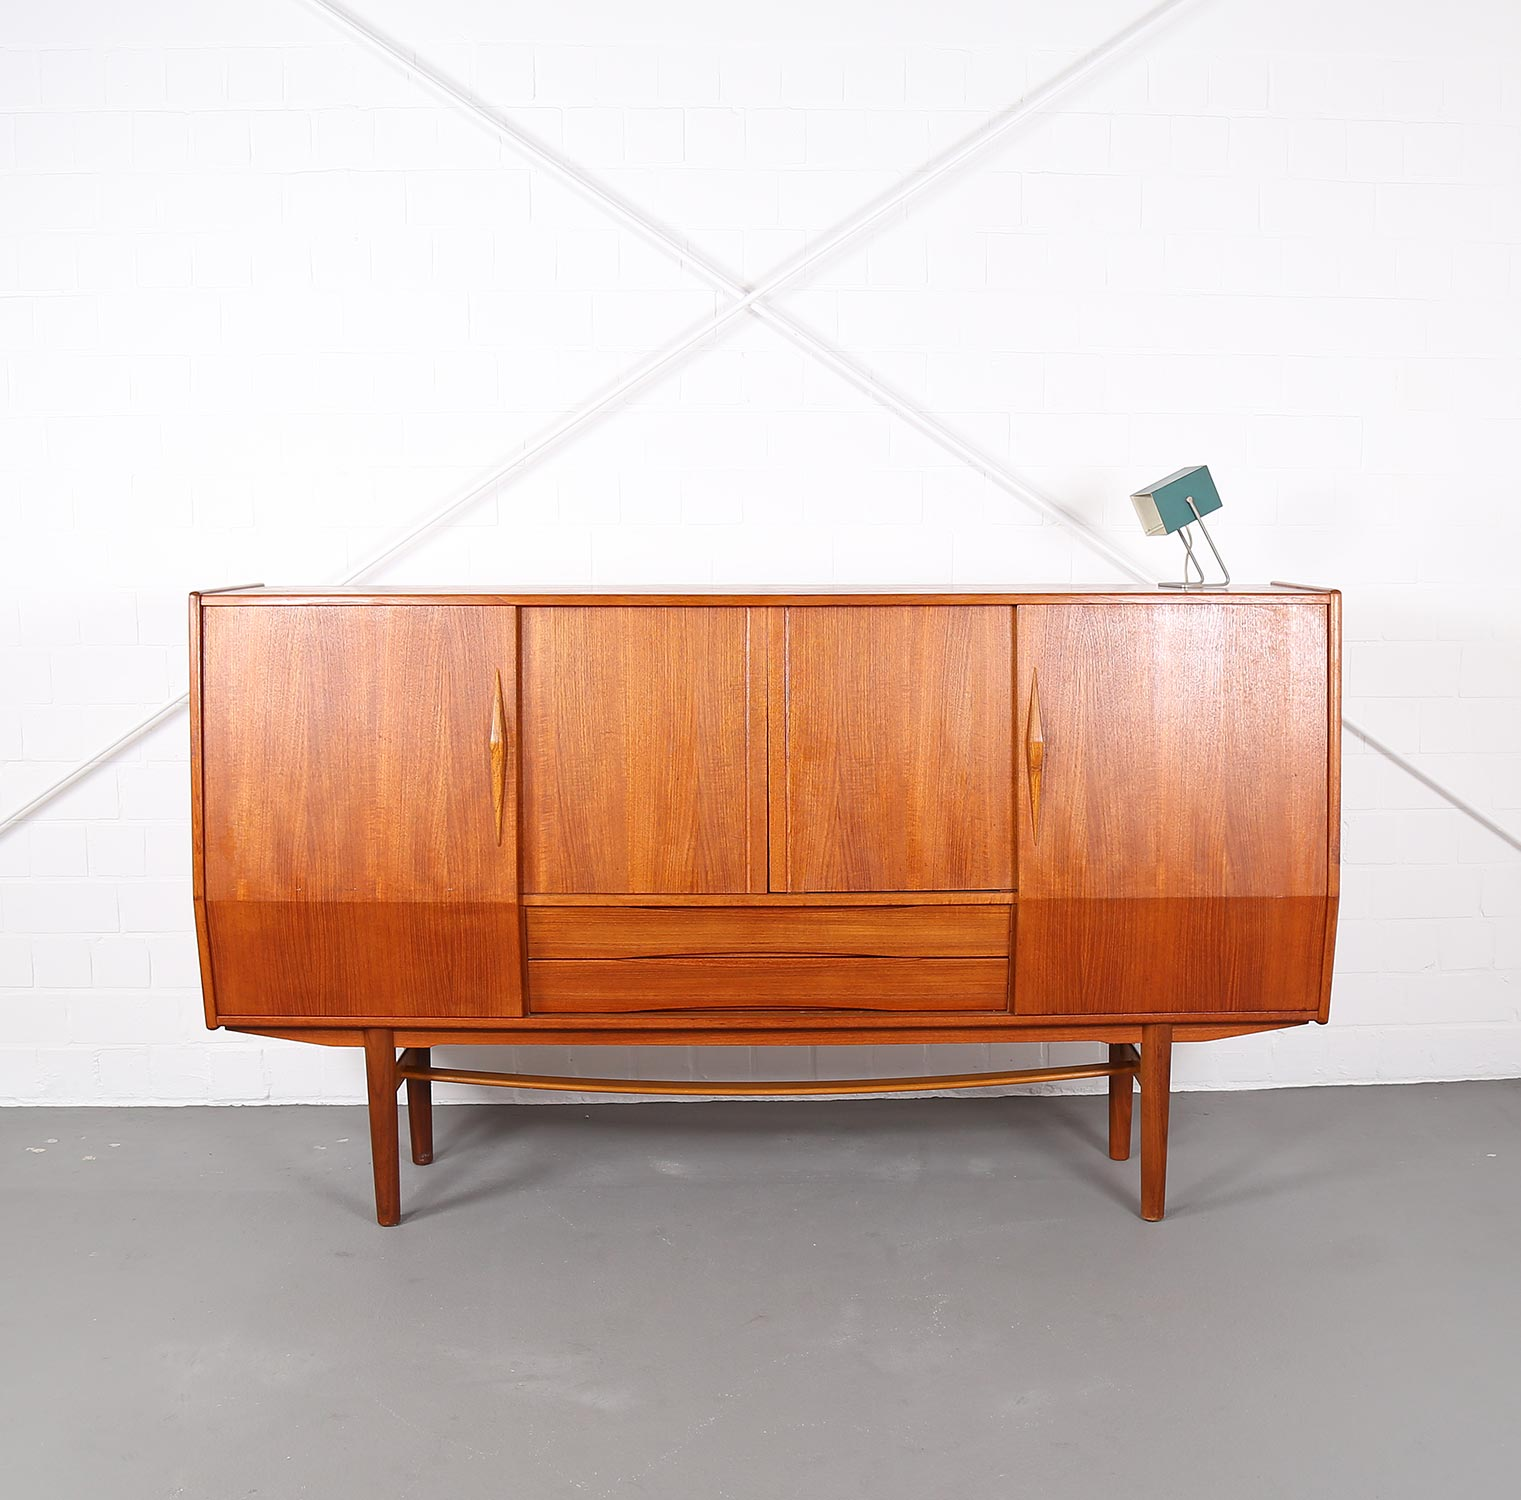 sideboard mid century modern with Geometric Danish Design Teak Sideboard Credenza on What Is A Credenza together with Id F 7476383 as well Pd011a616 further Interior Design Styles 8 Popular Types Explained also Mid Century Scandinavian Style.